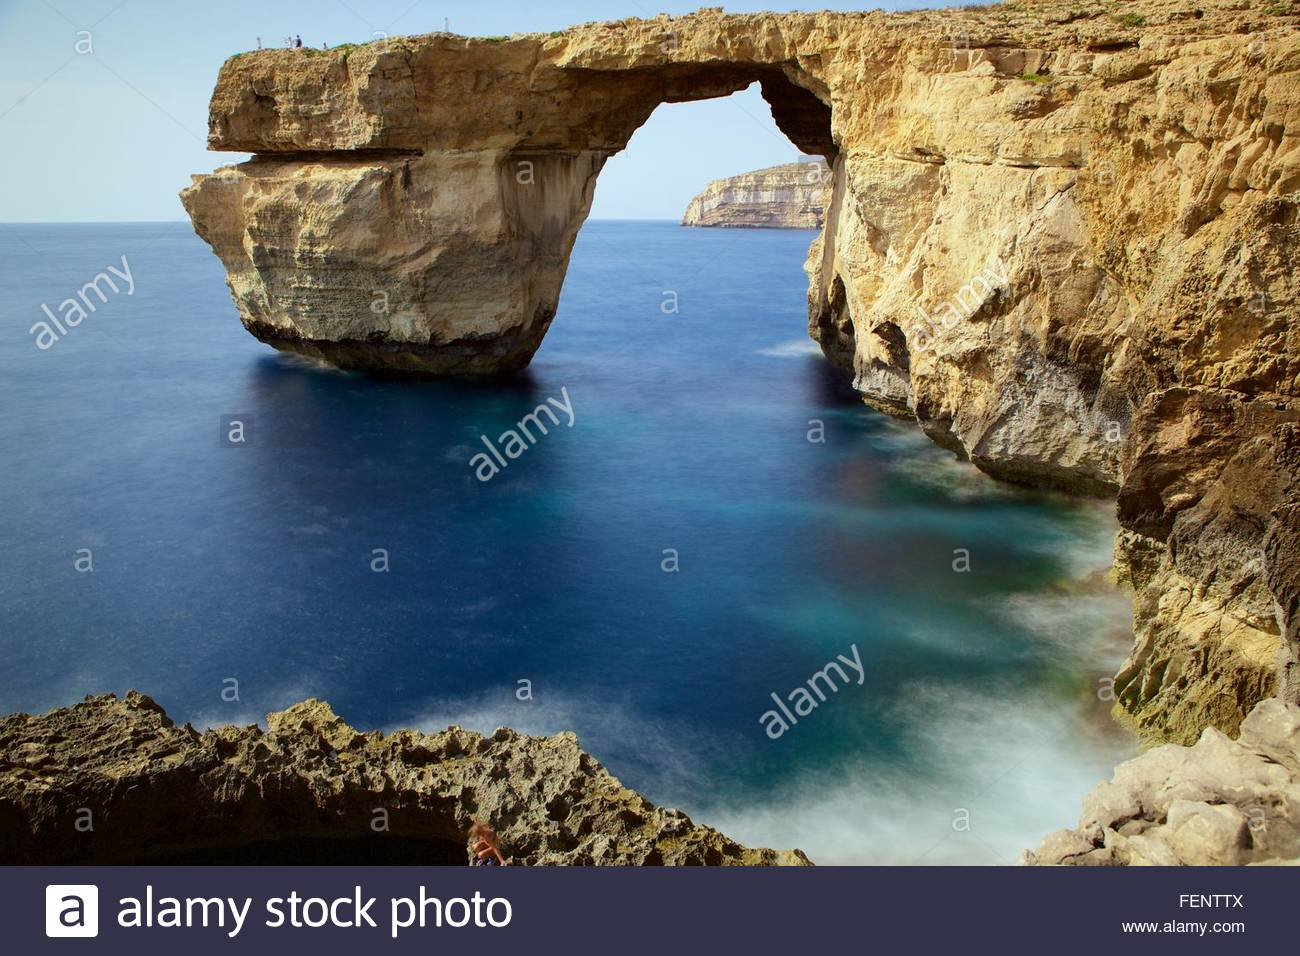 Azure window, Gozo, Malta - Stock Image